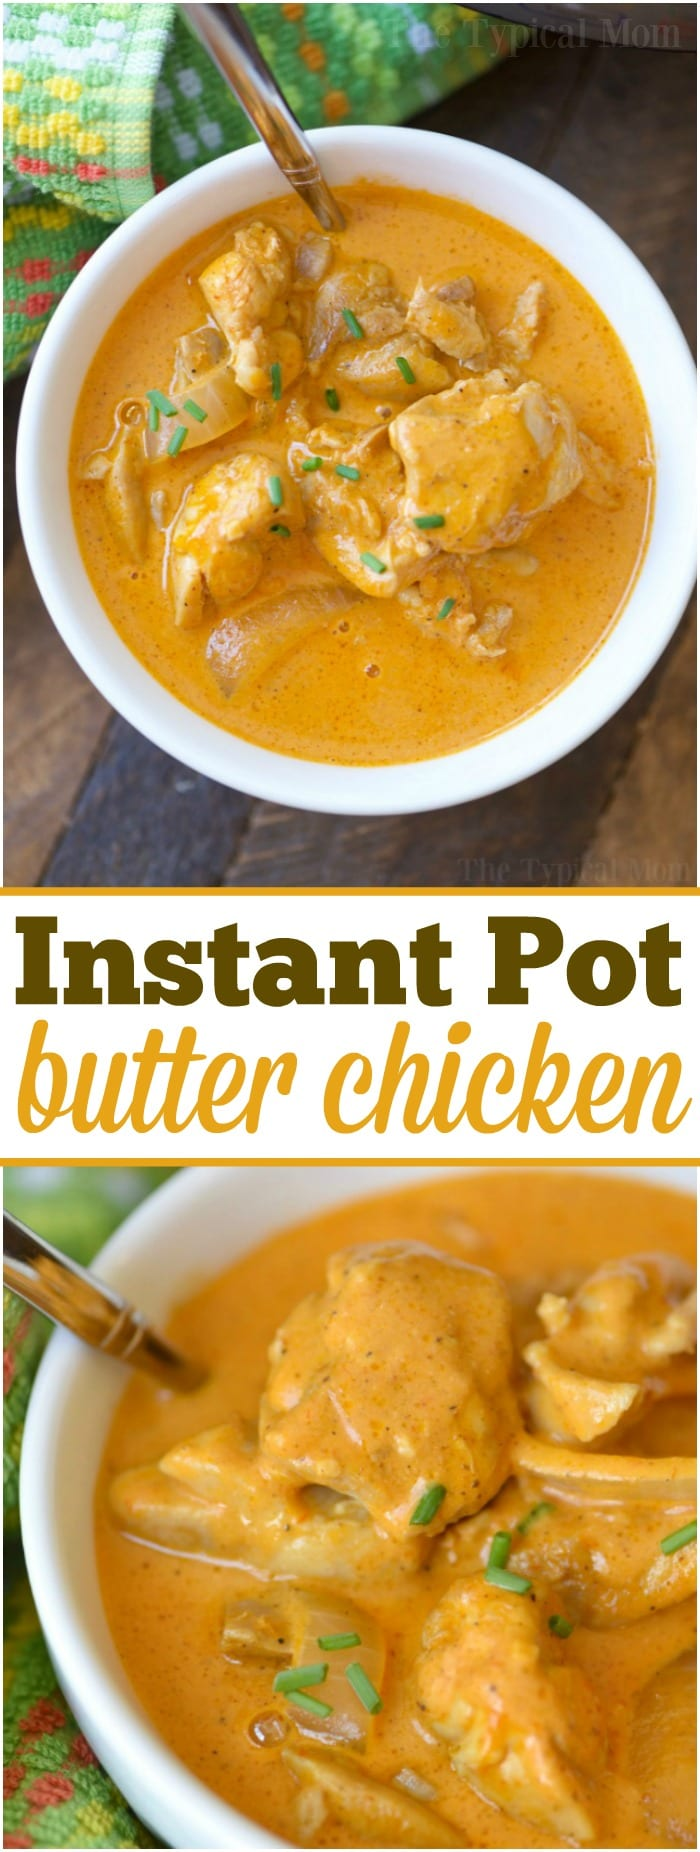 Really easy Instant Pot butter chicken recipe that is moist and full of flavor. Takes just 5 minutes to cook and the perfect family dinner with a side of naan. If you're never tried making pressure cooker butter chicken this is an easy one to start with. Instant Pot Indian food perfection. #instantpot #butterchicken #butter #chicken #indian #easy #instantpotrecipes #thetypicalmom